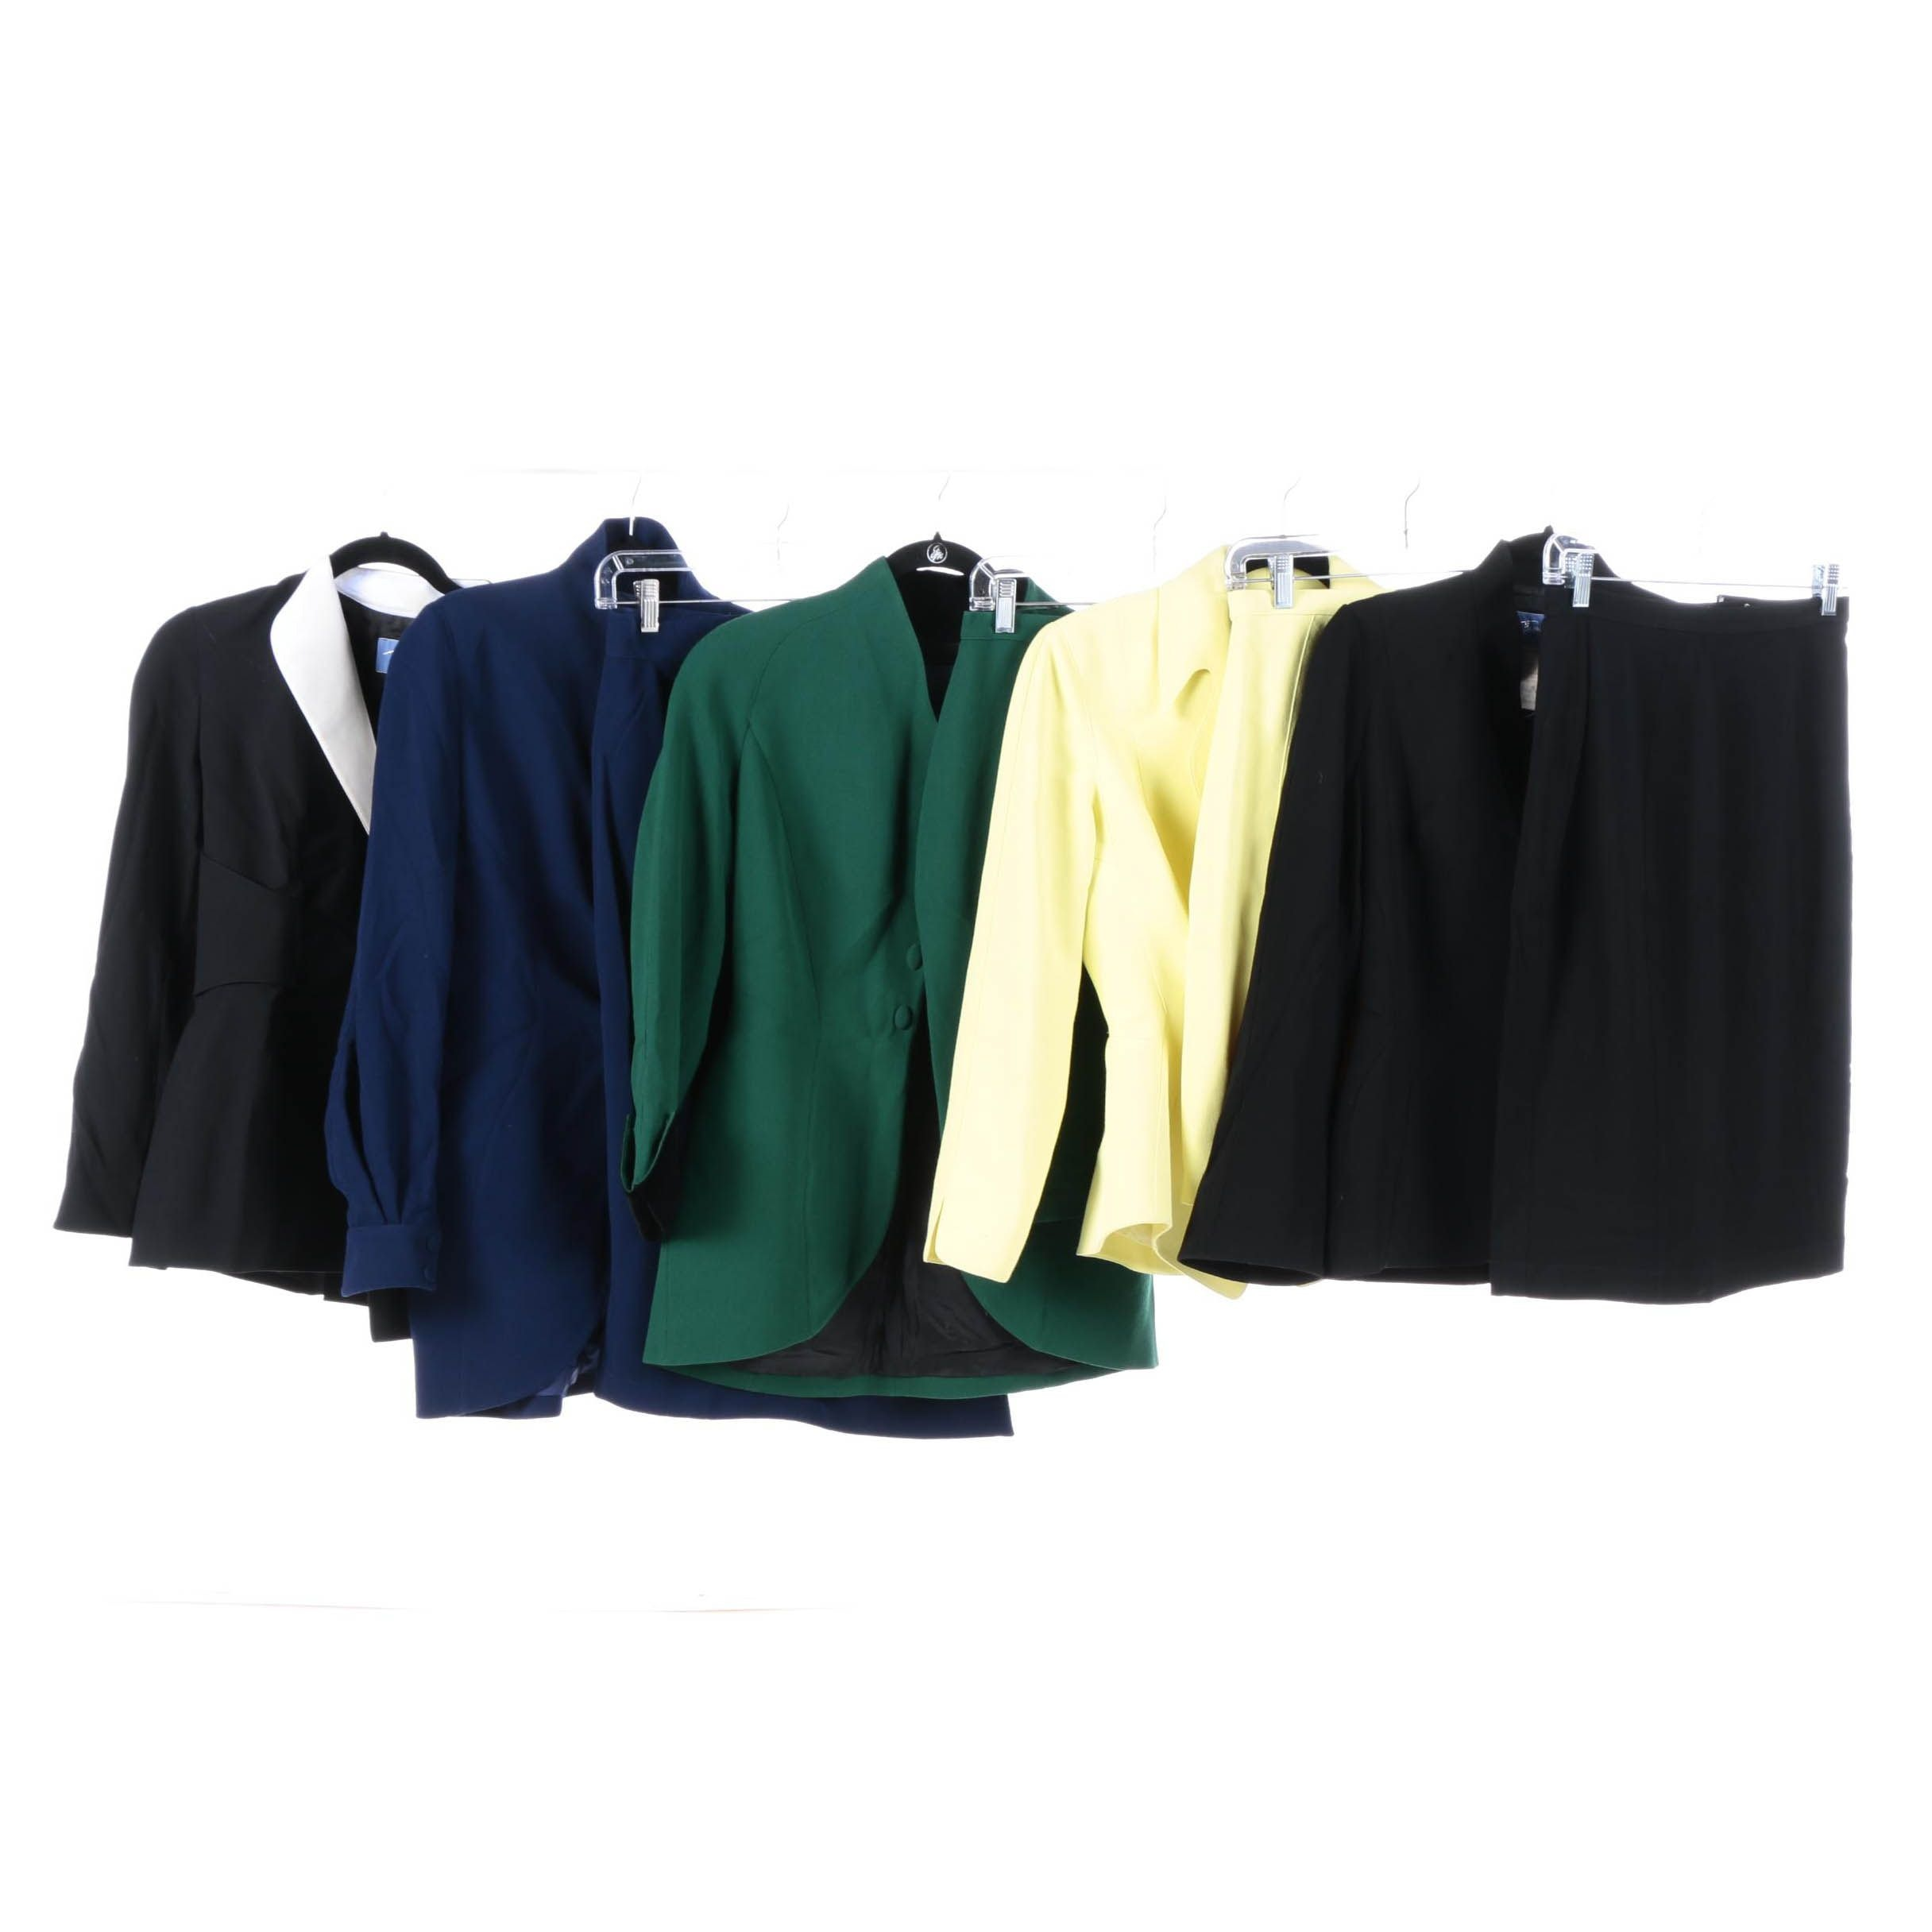 Thierry Mugler Wool Skirt Suits and Thierry Mugler Couture Blazer